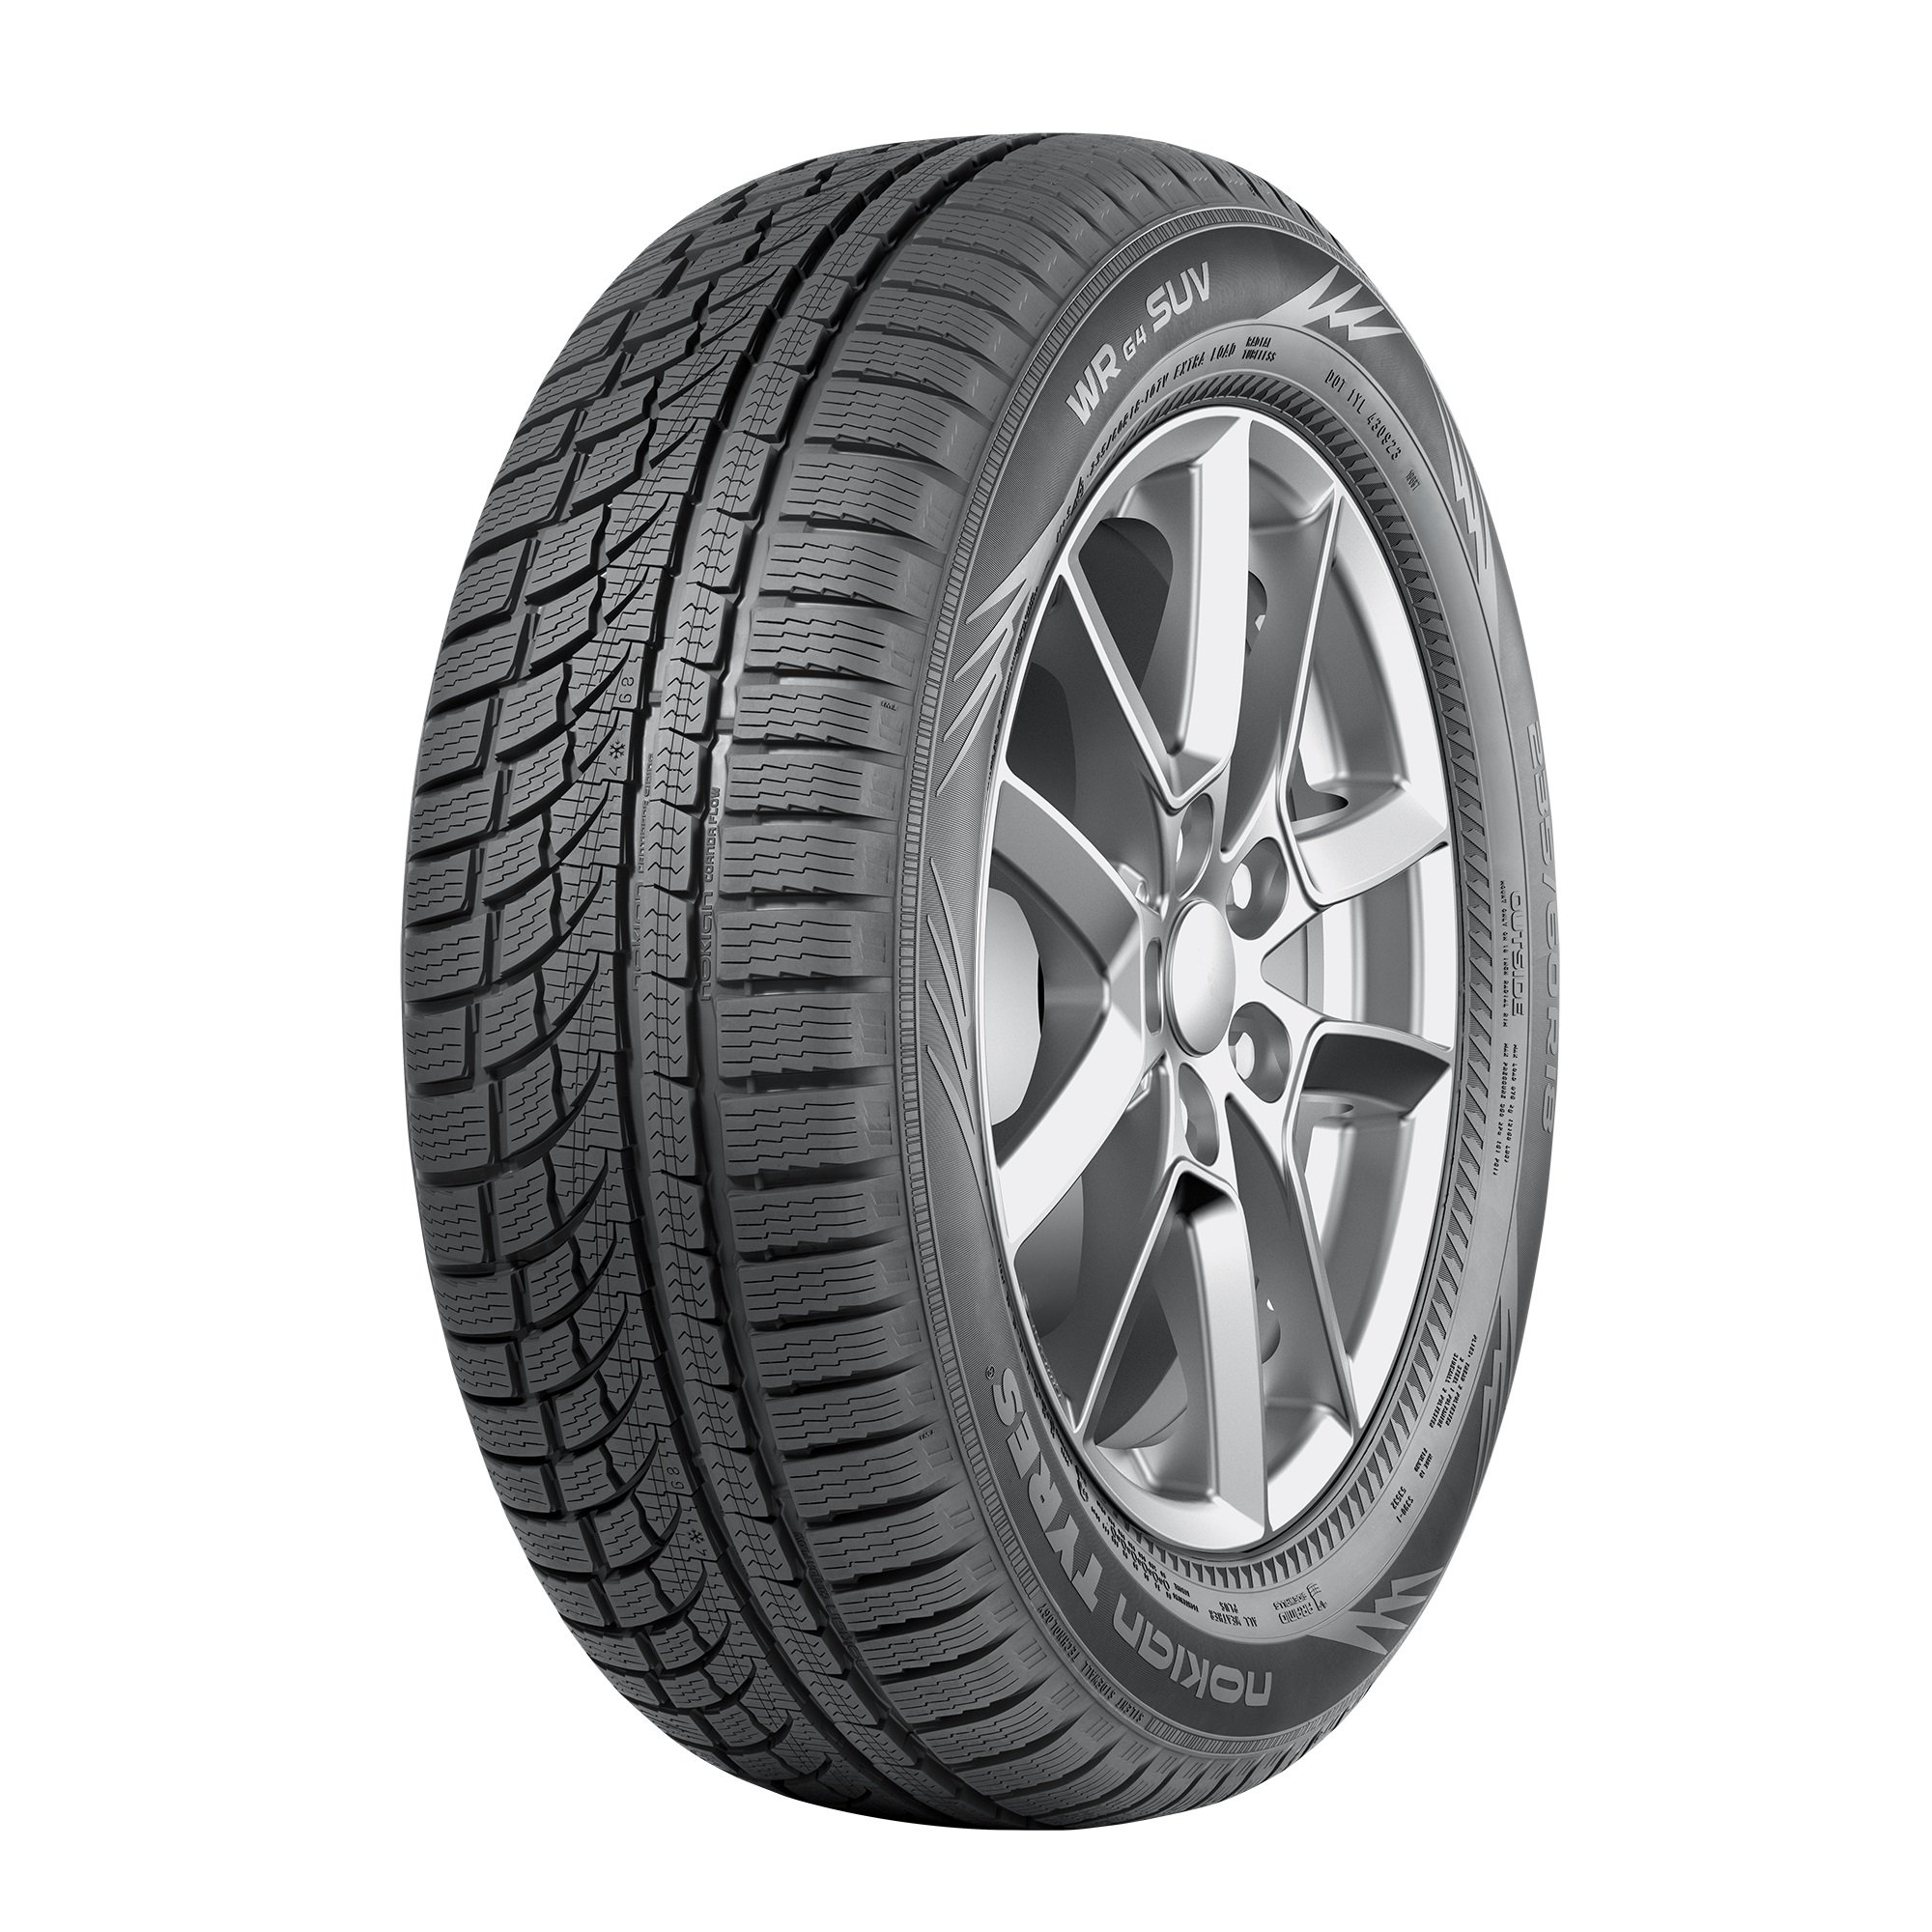 Nokian WR G4 SUV Tire Is Designed for North American Roads